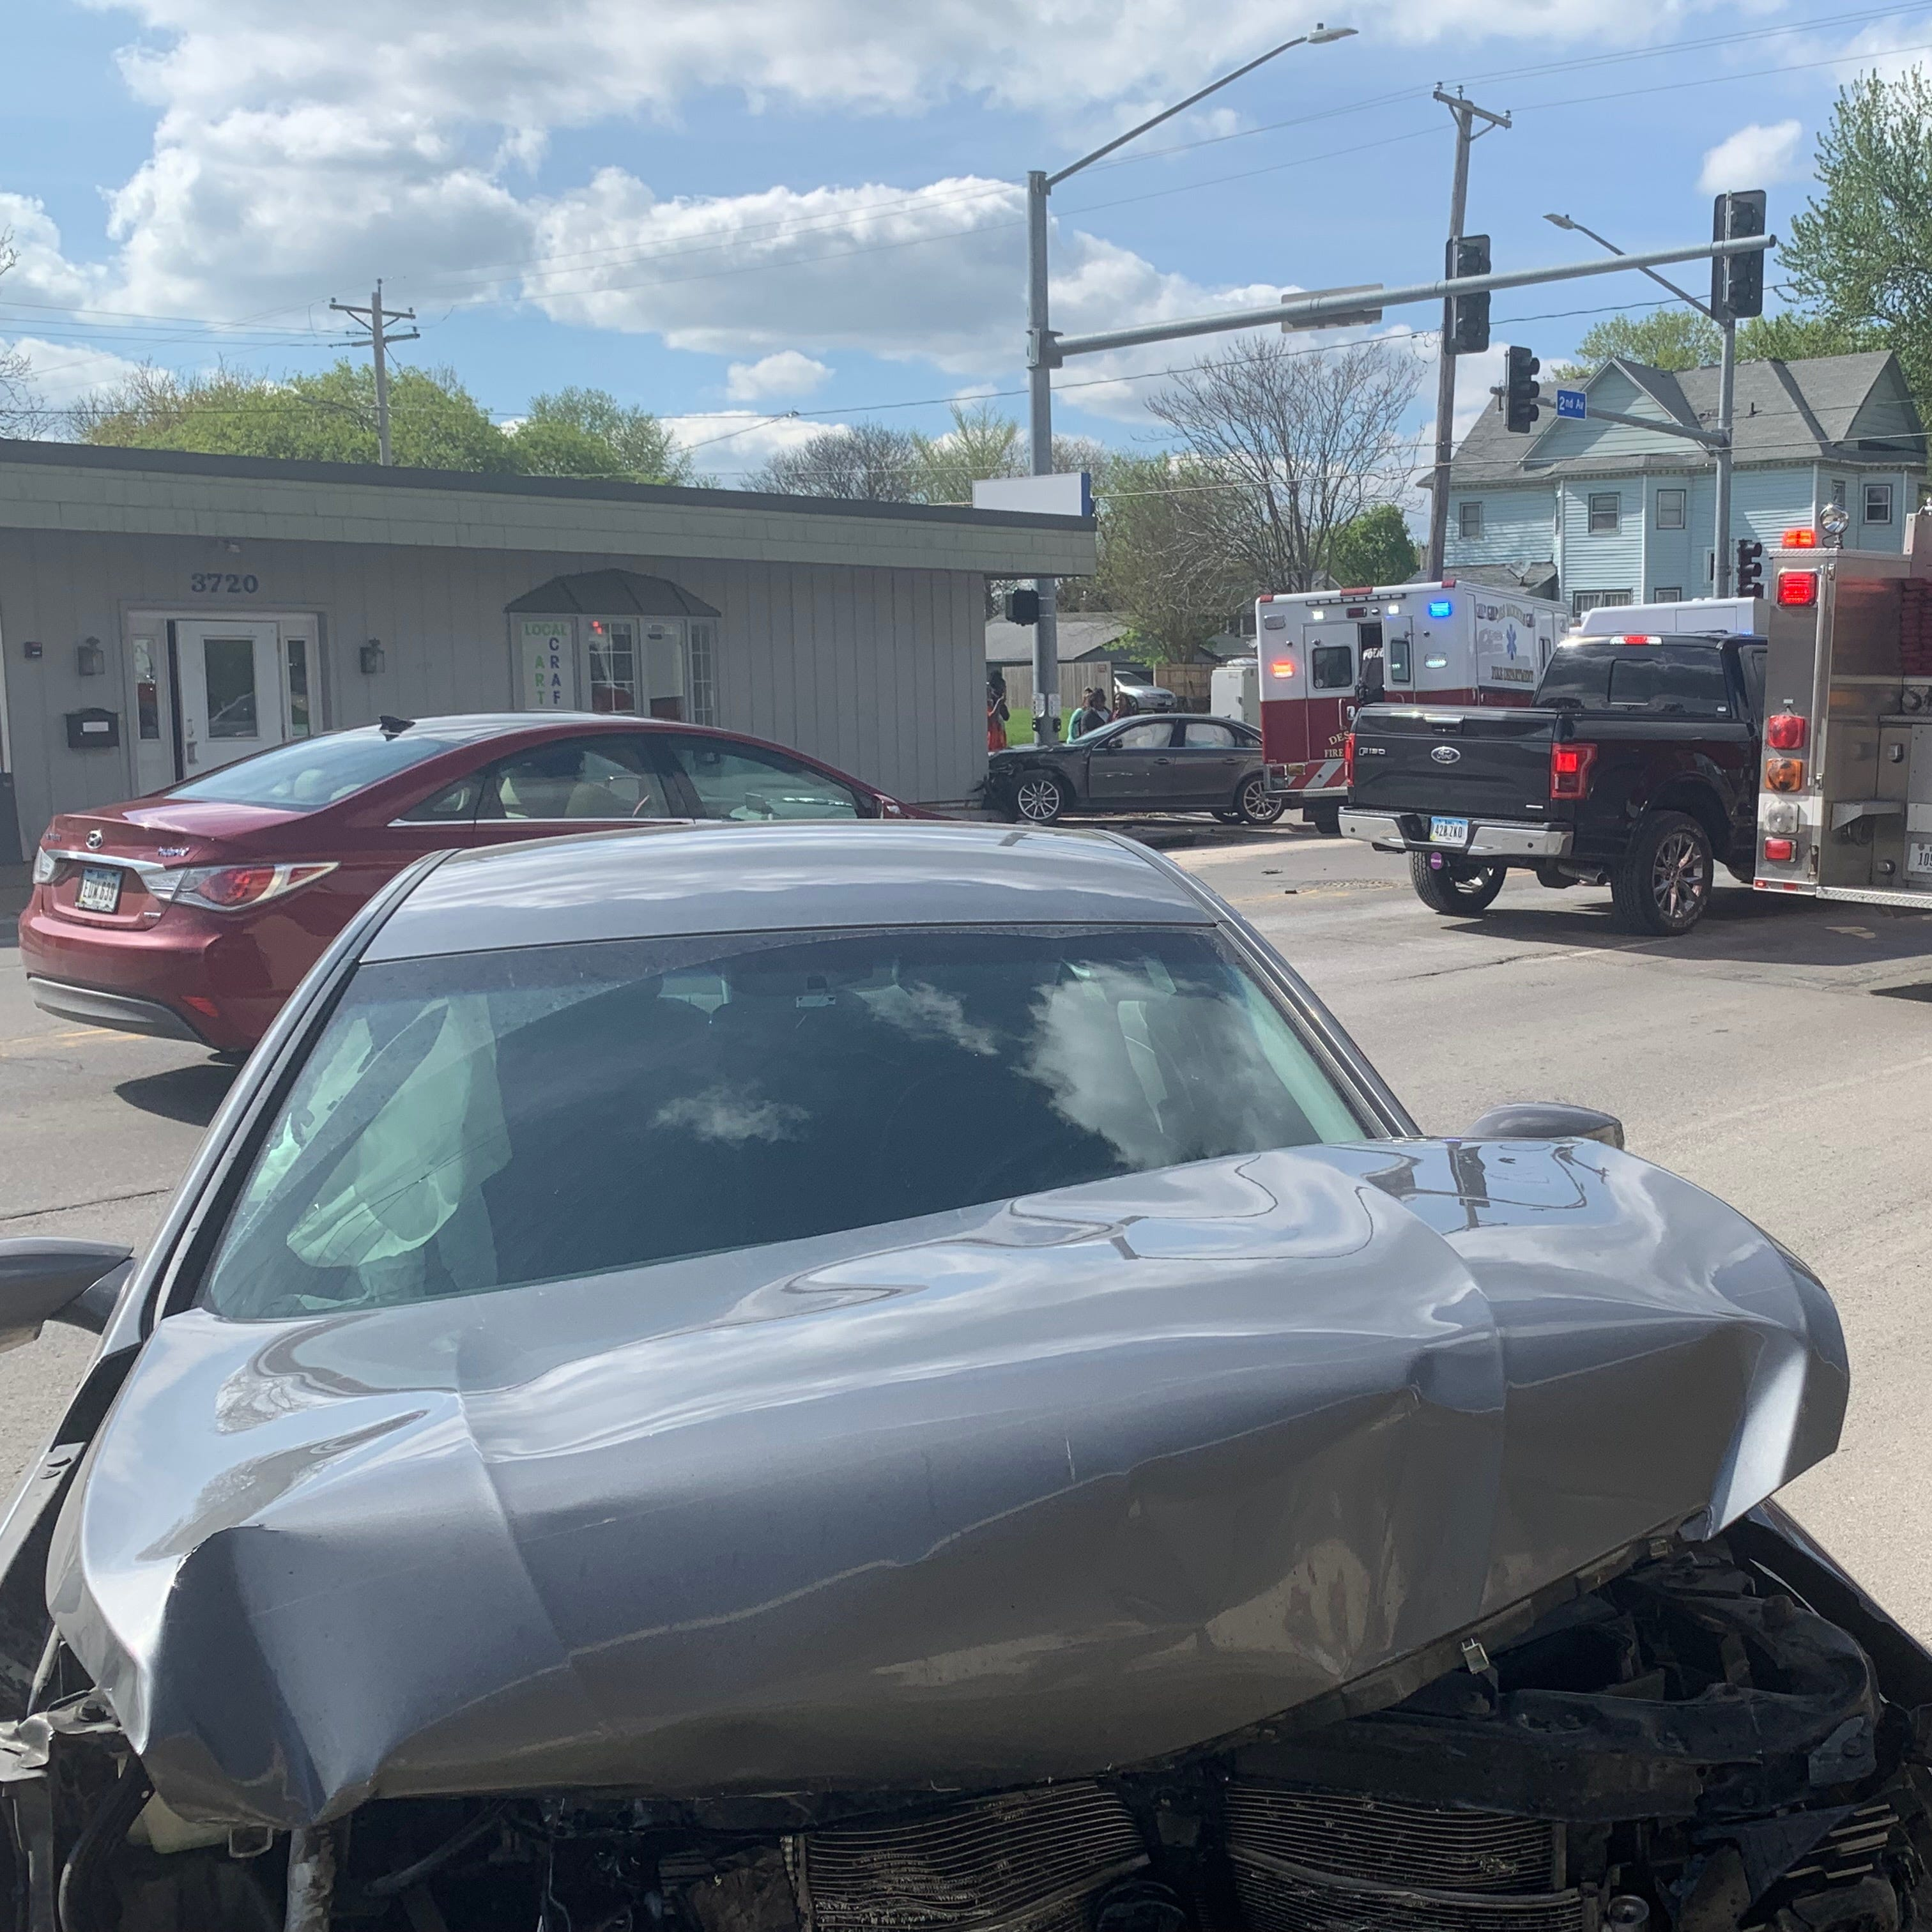 'In the wrong place at the wrong time': Des Moines high school students hit by car while getting off bus